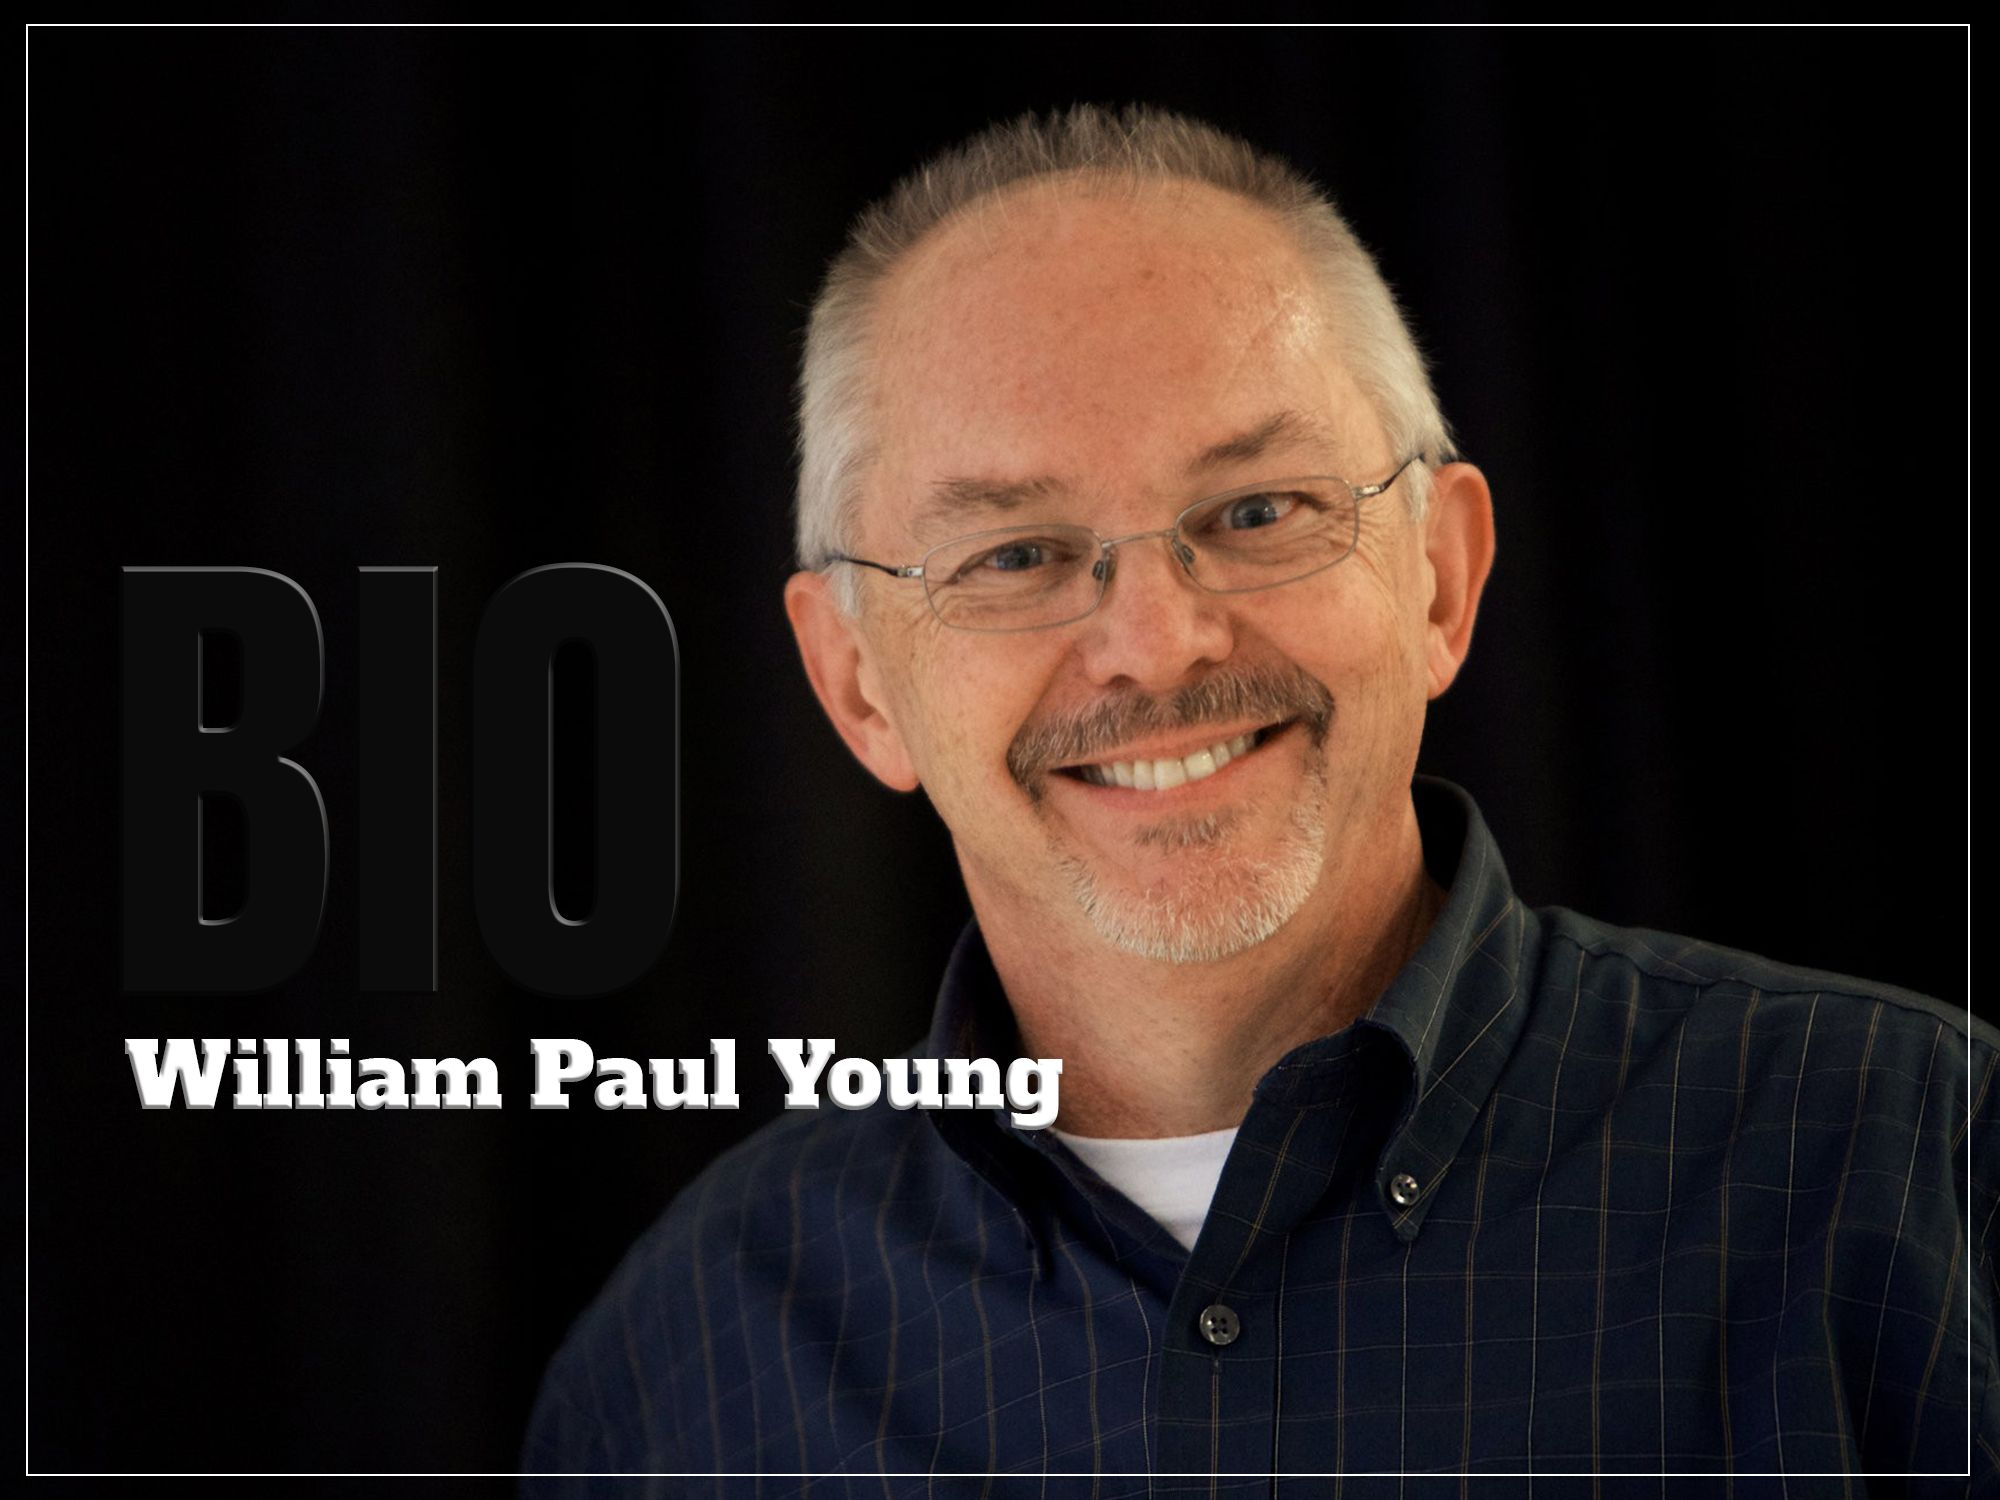 William Paul Young